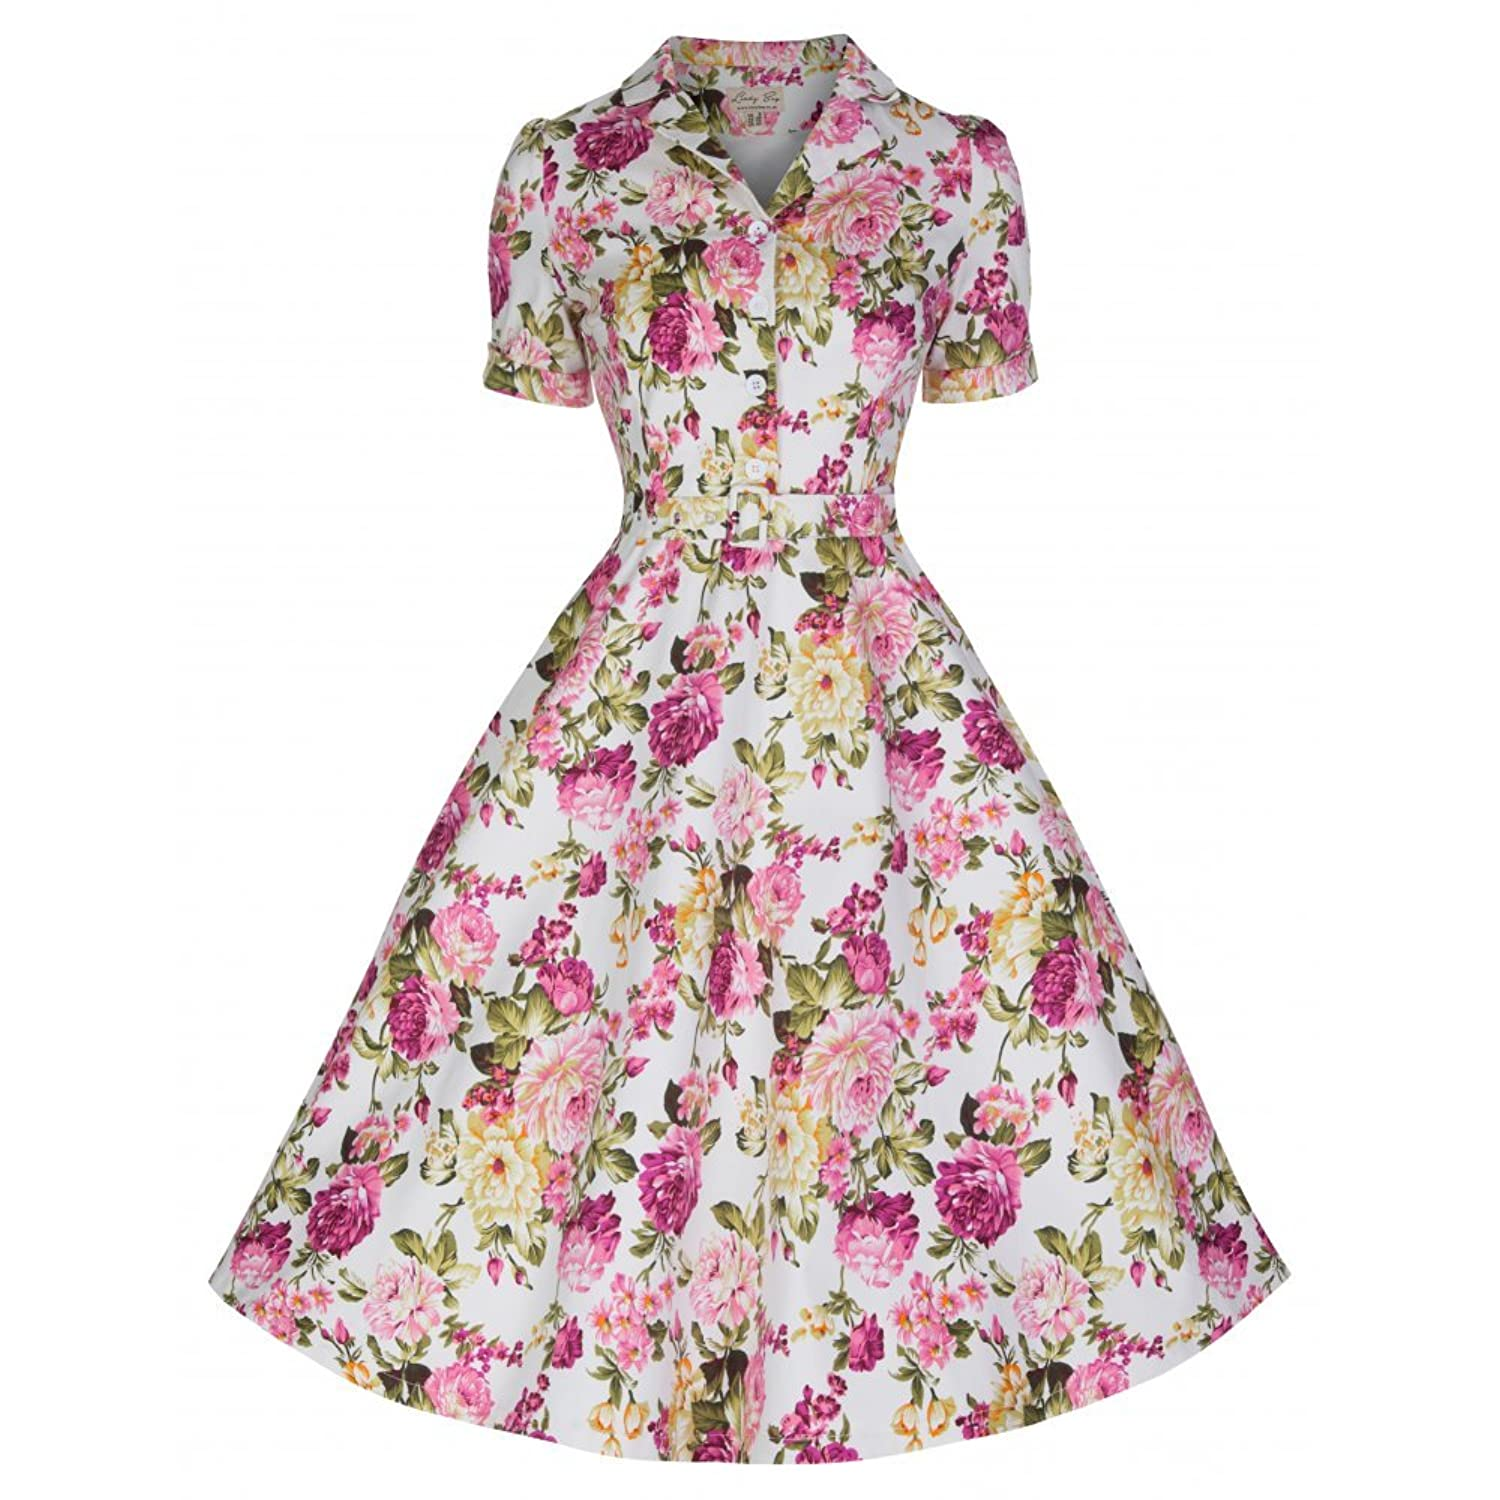 1950s Swing Dresses Lindy Bop Uma White Floral Tea Dress £18.79 AT vintagedancer.com